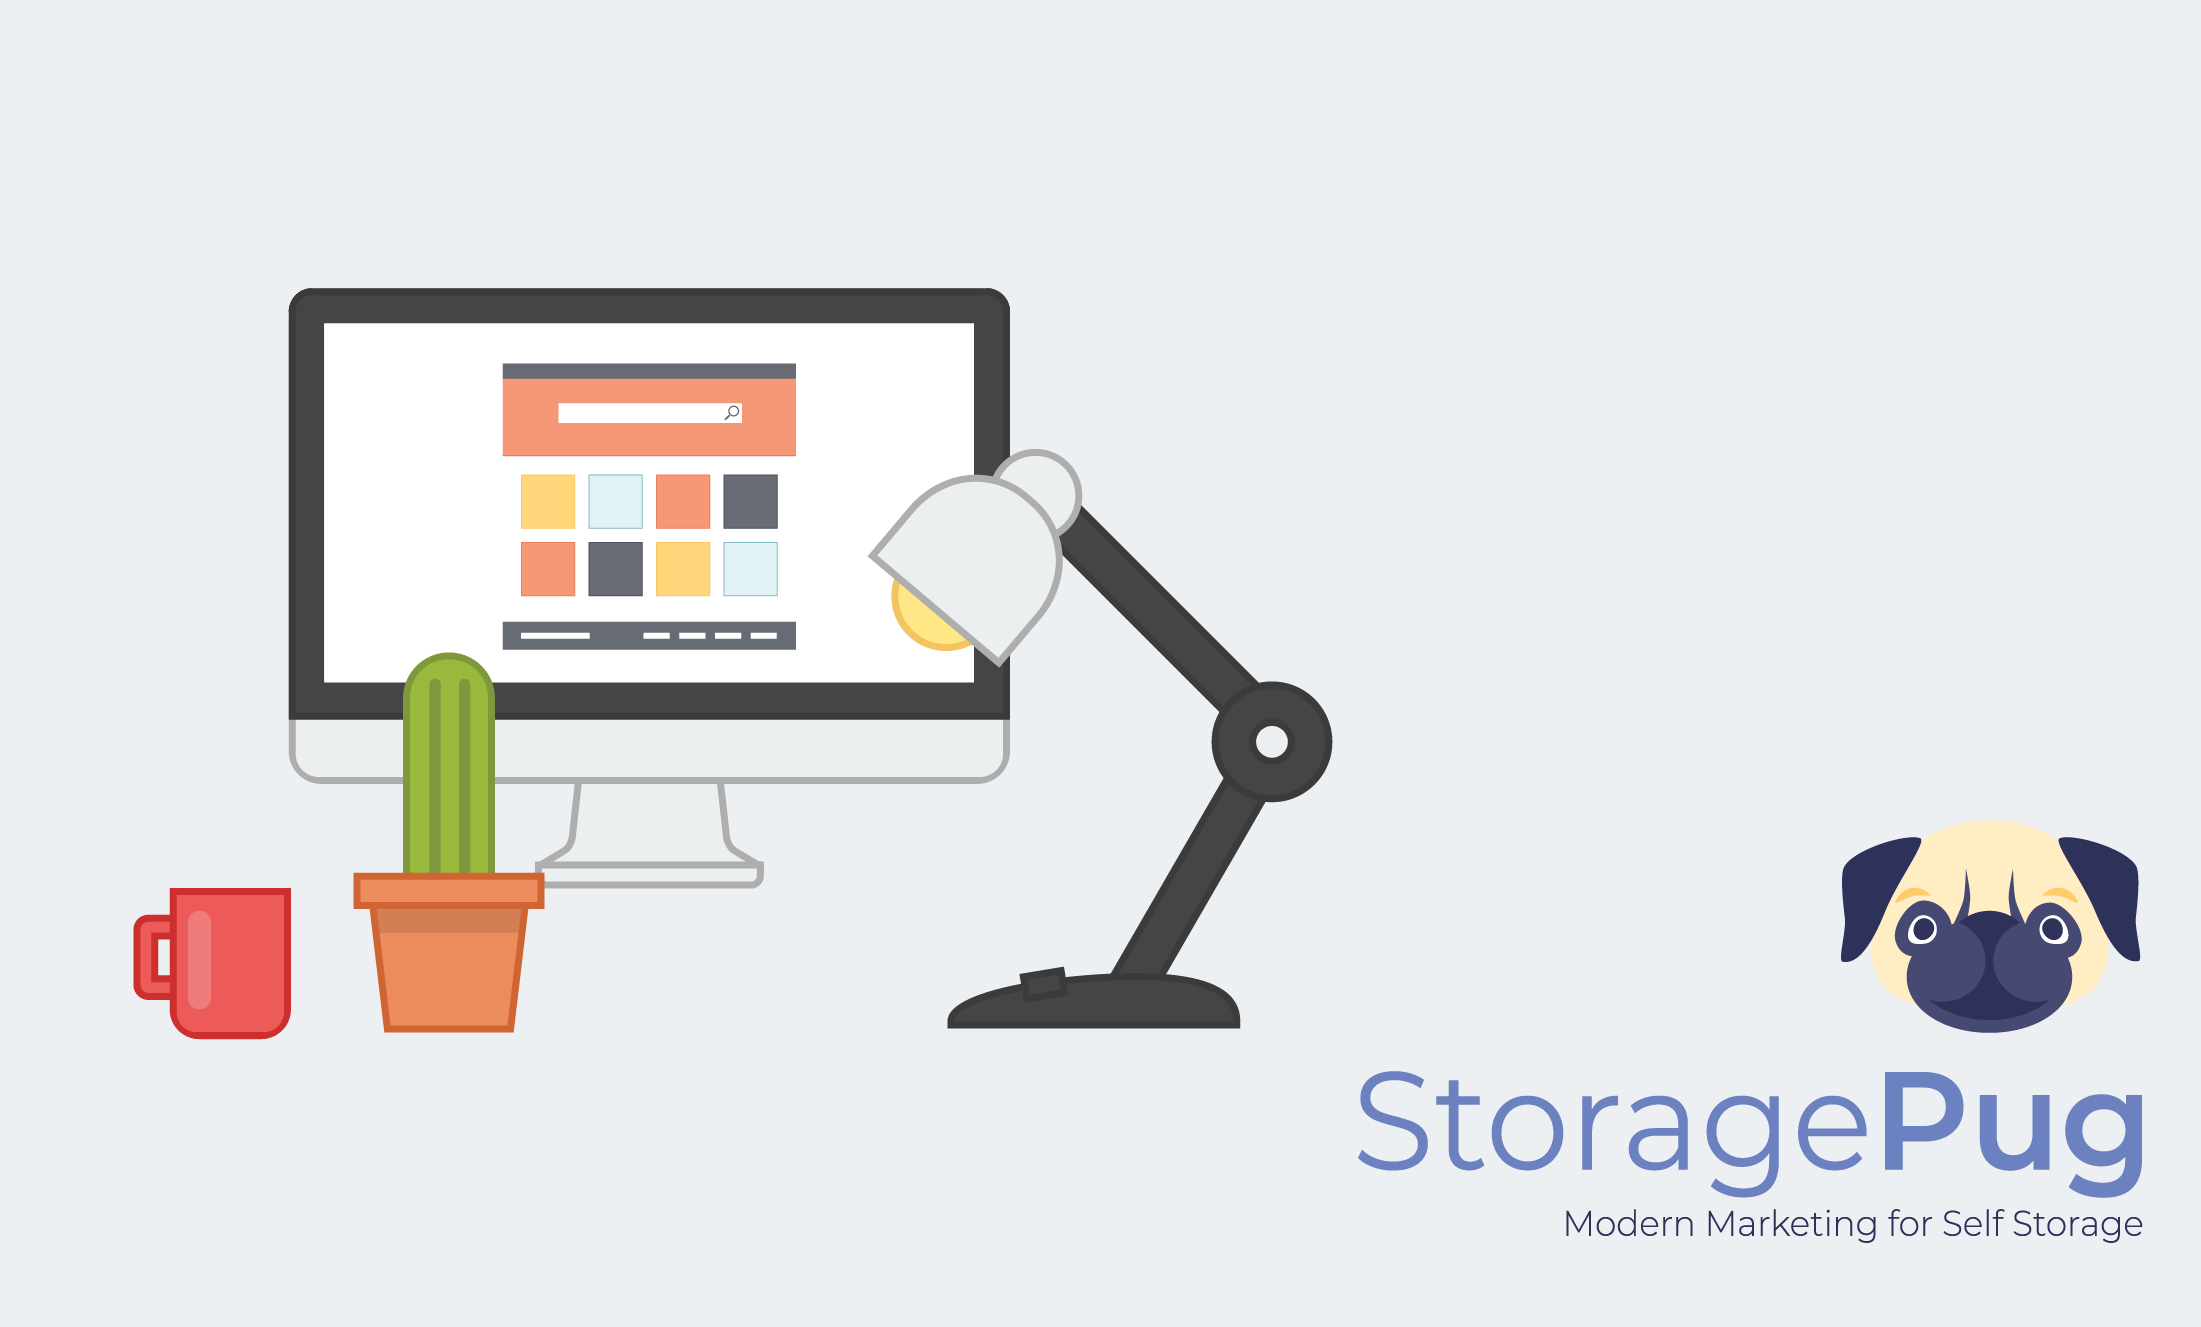 Automating your storage facility@4x